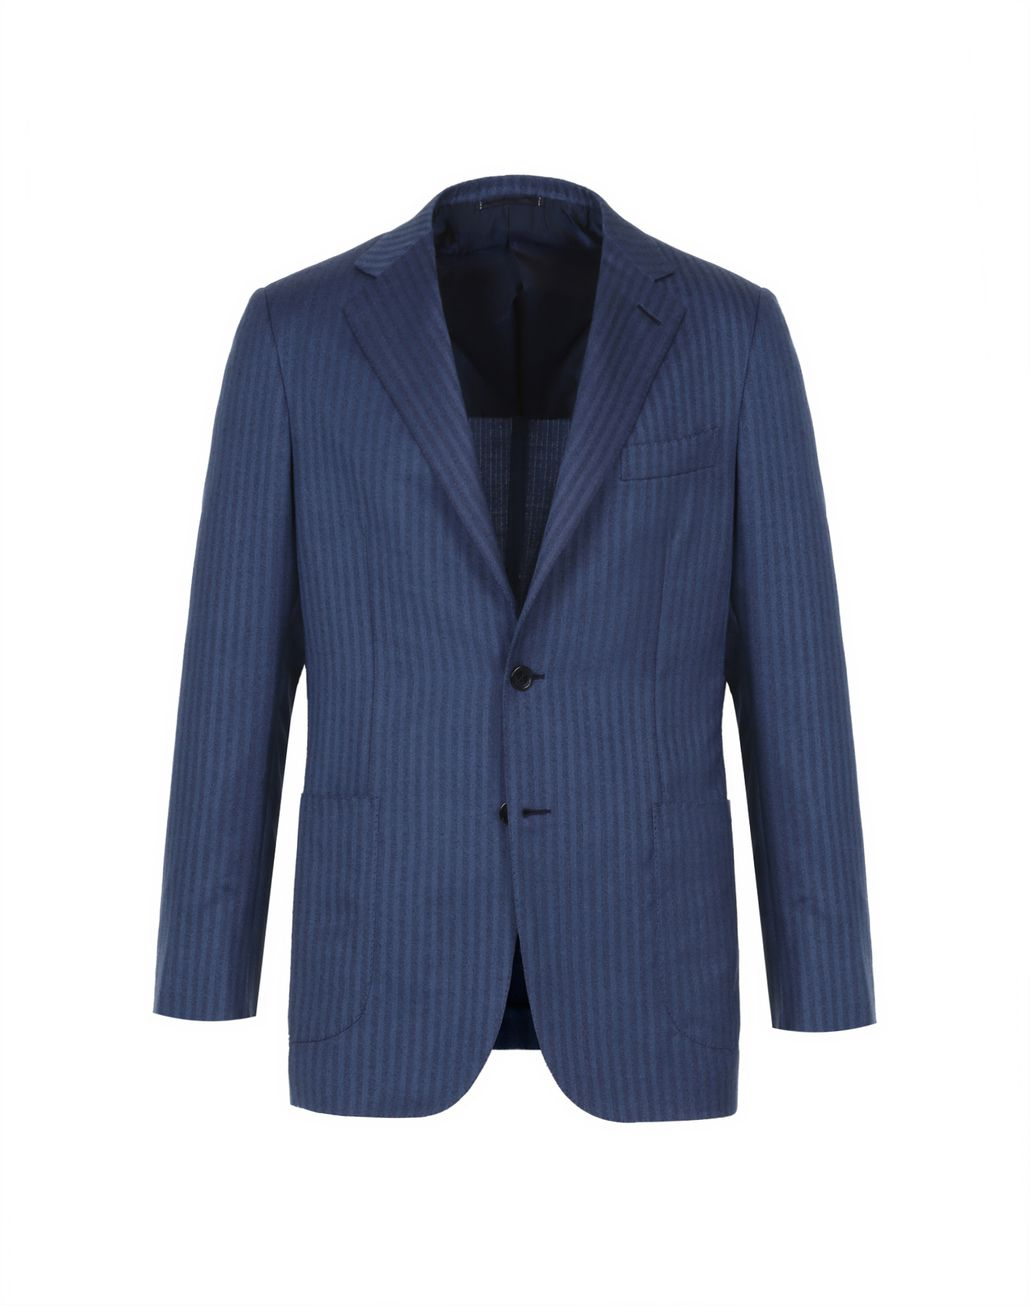 BRIONI Bluette Herringbone Condotti Cashmere Jacket Suits & Jackets Man f